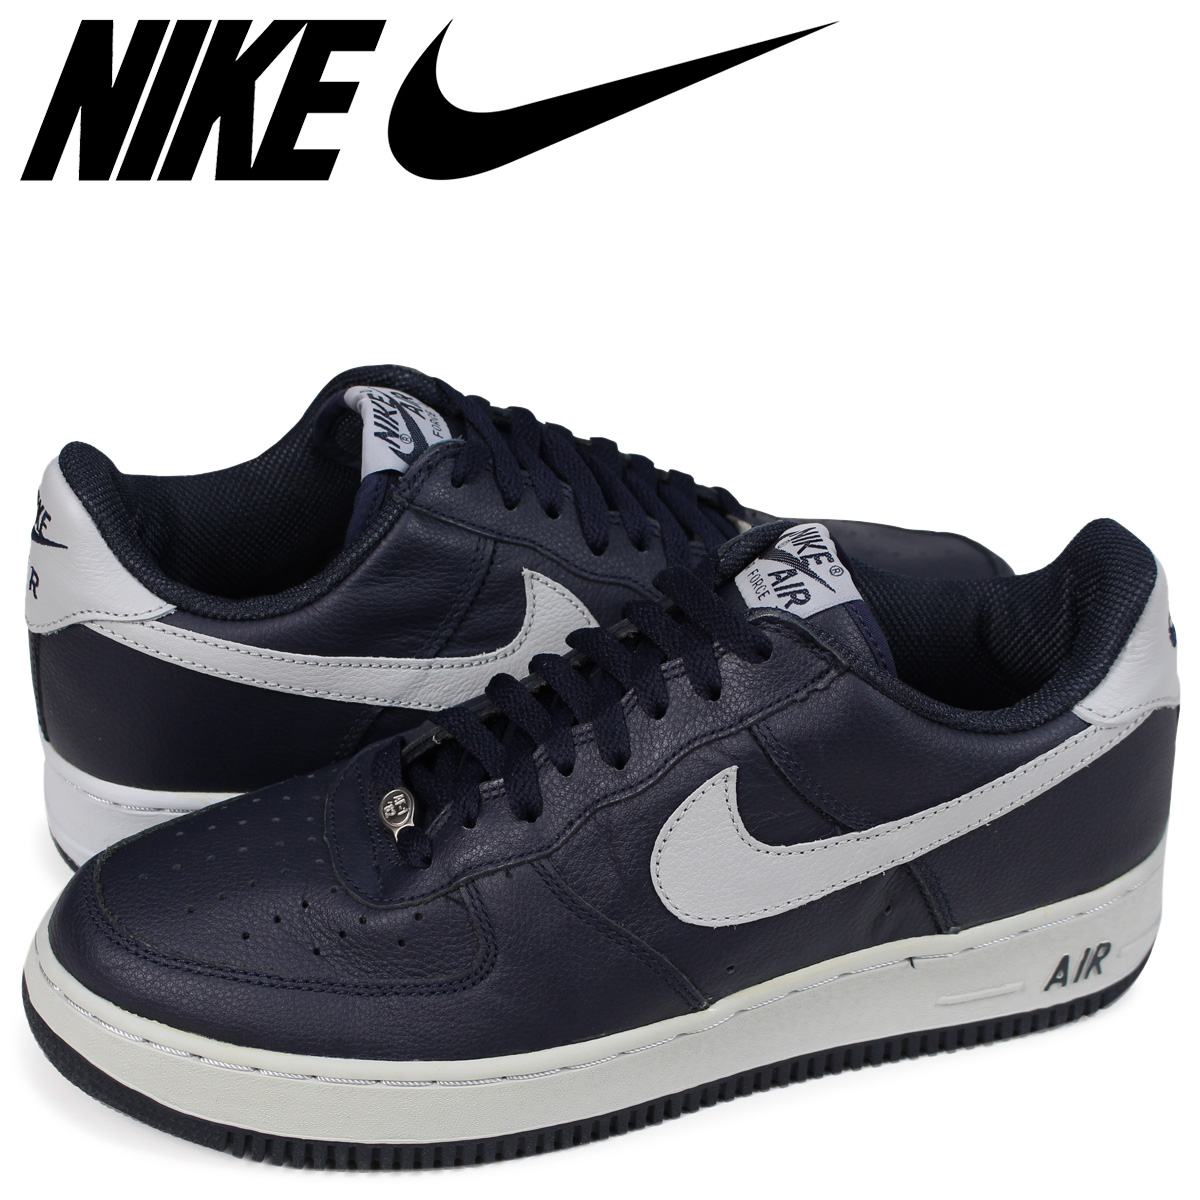 reputable site ca0fe e75ac NIKE AIR FORCE 1 LOW COURIR Nike air force 1 sneakers men 305,200-401 blue  ...